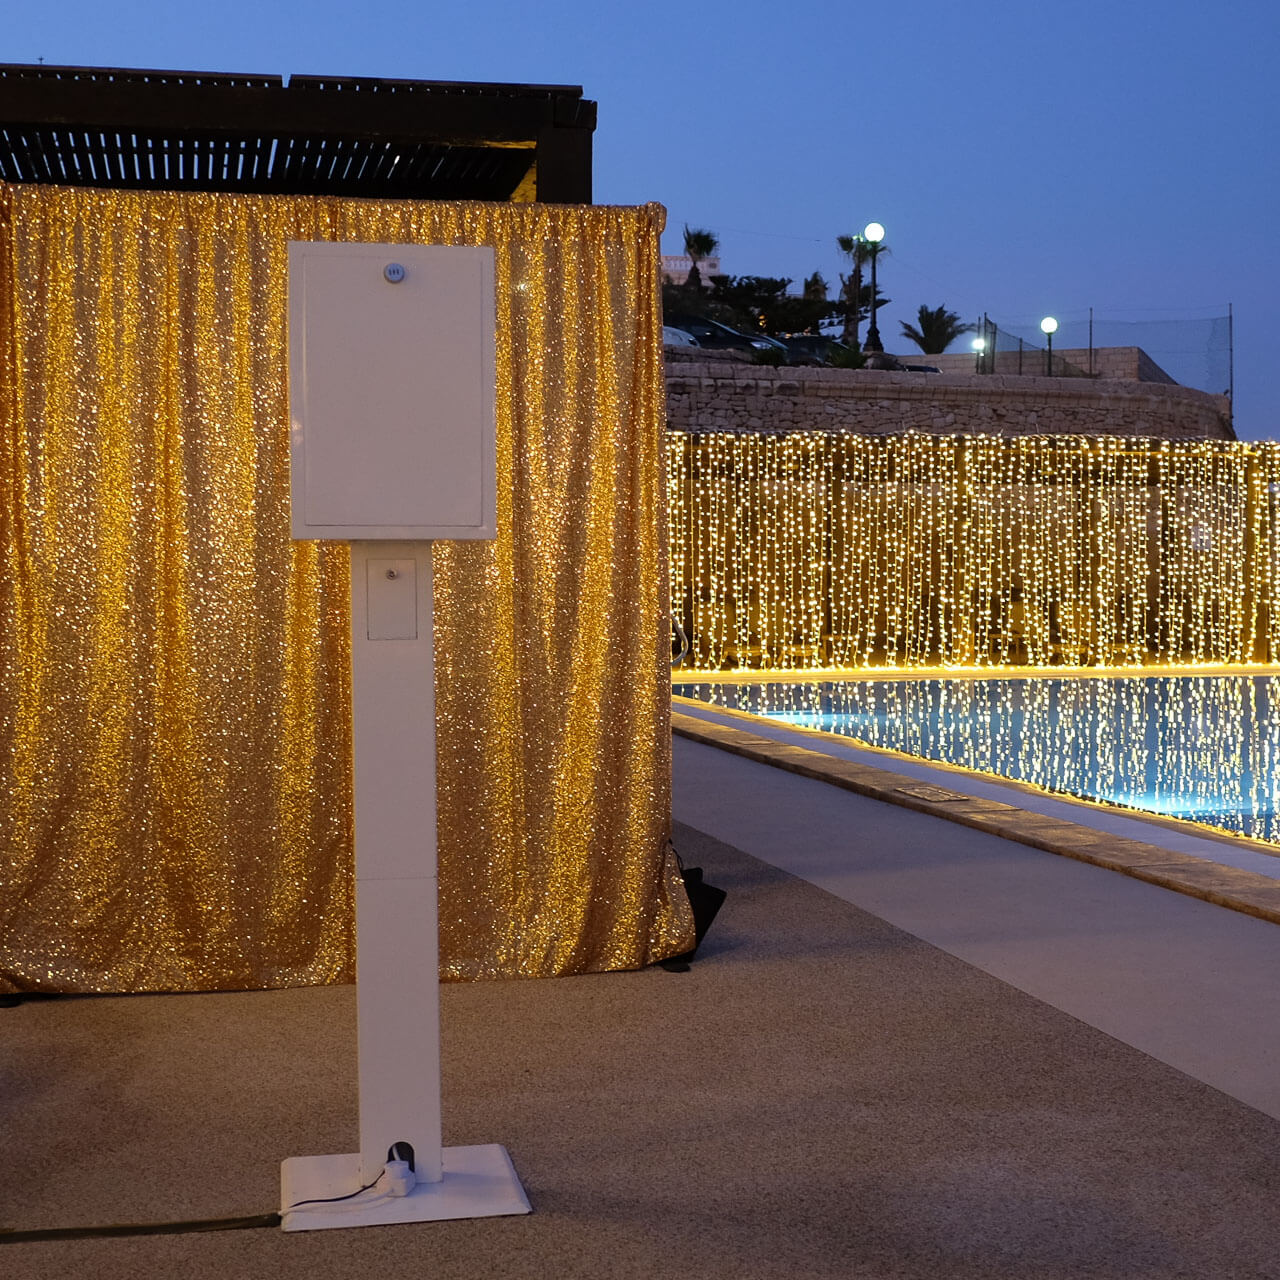 photo booth set up by the pool